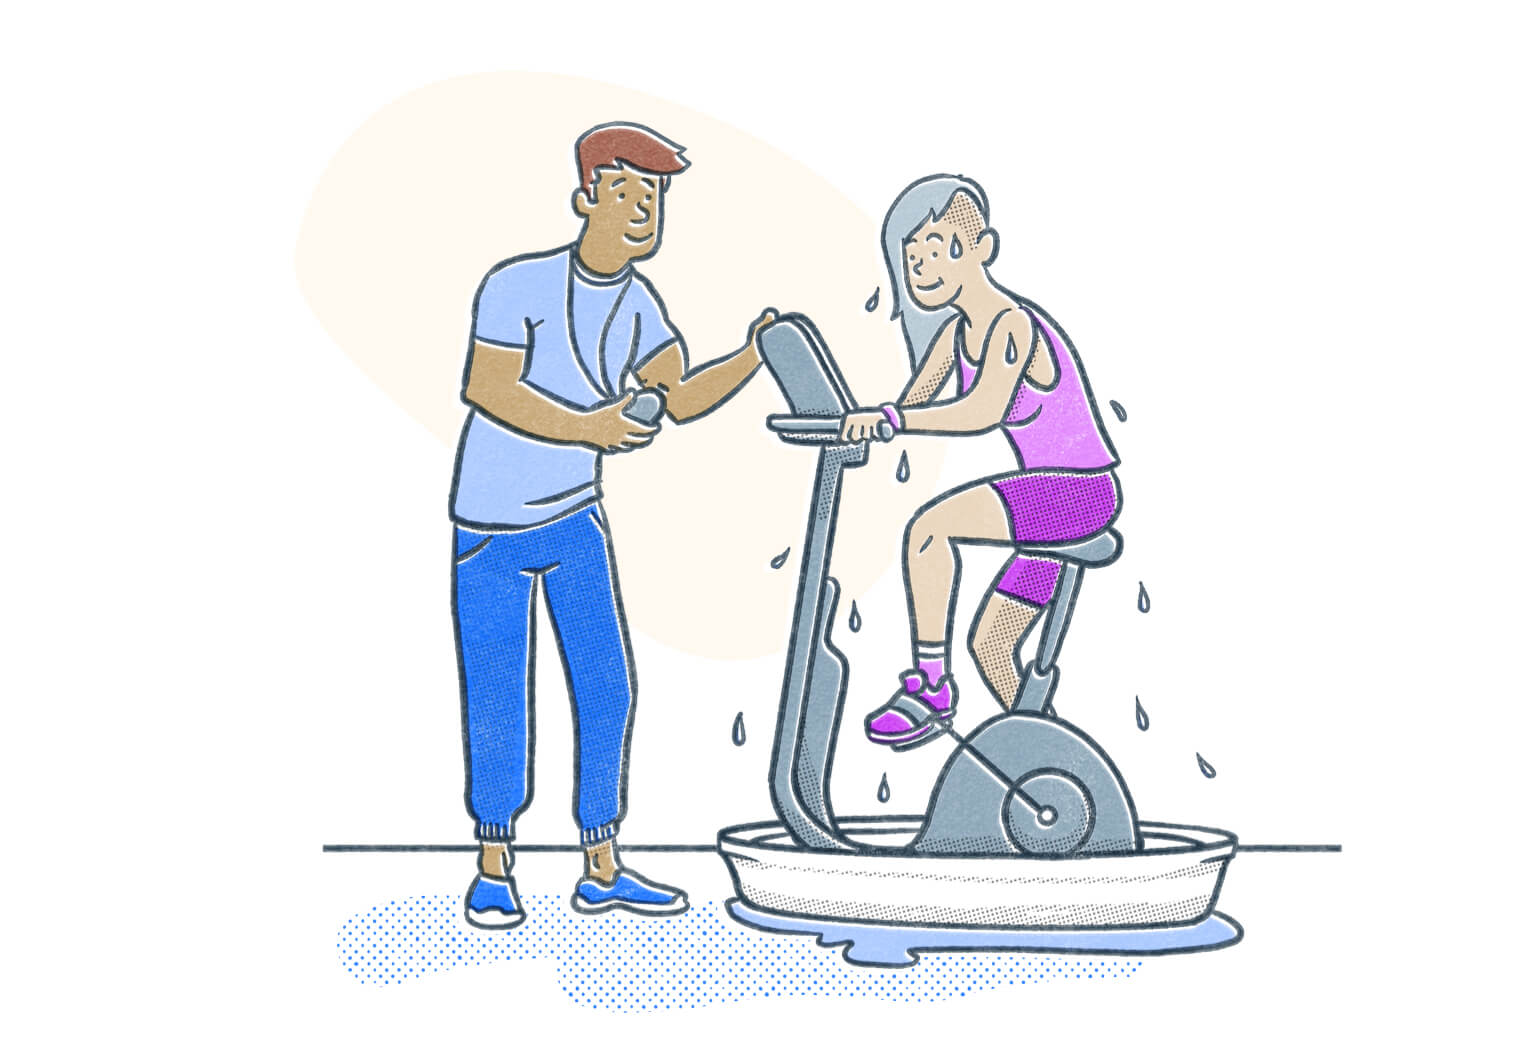 Certified Personal Trainer working with client sweating puddles on an exercise bike. Illustration.